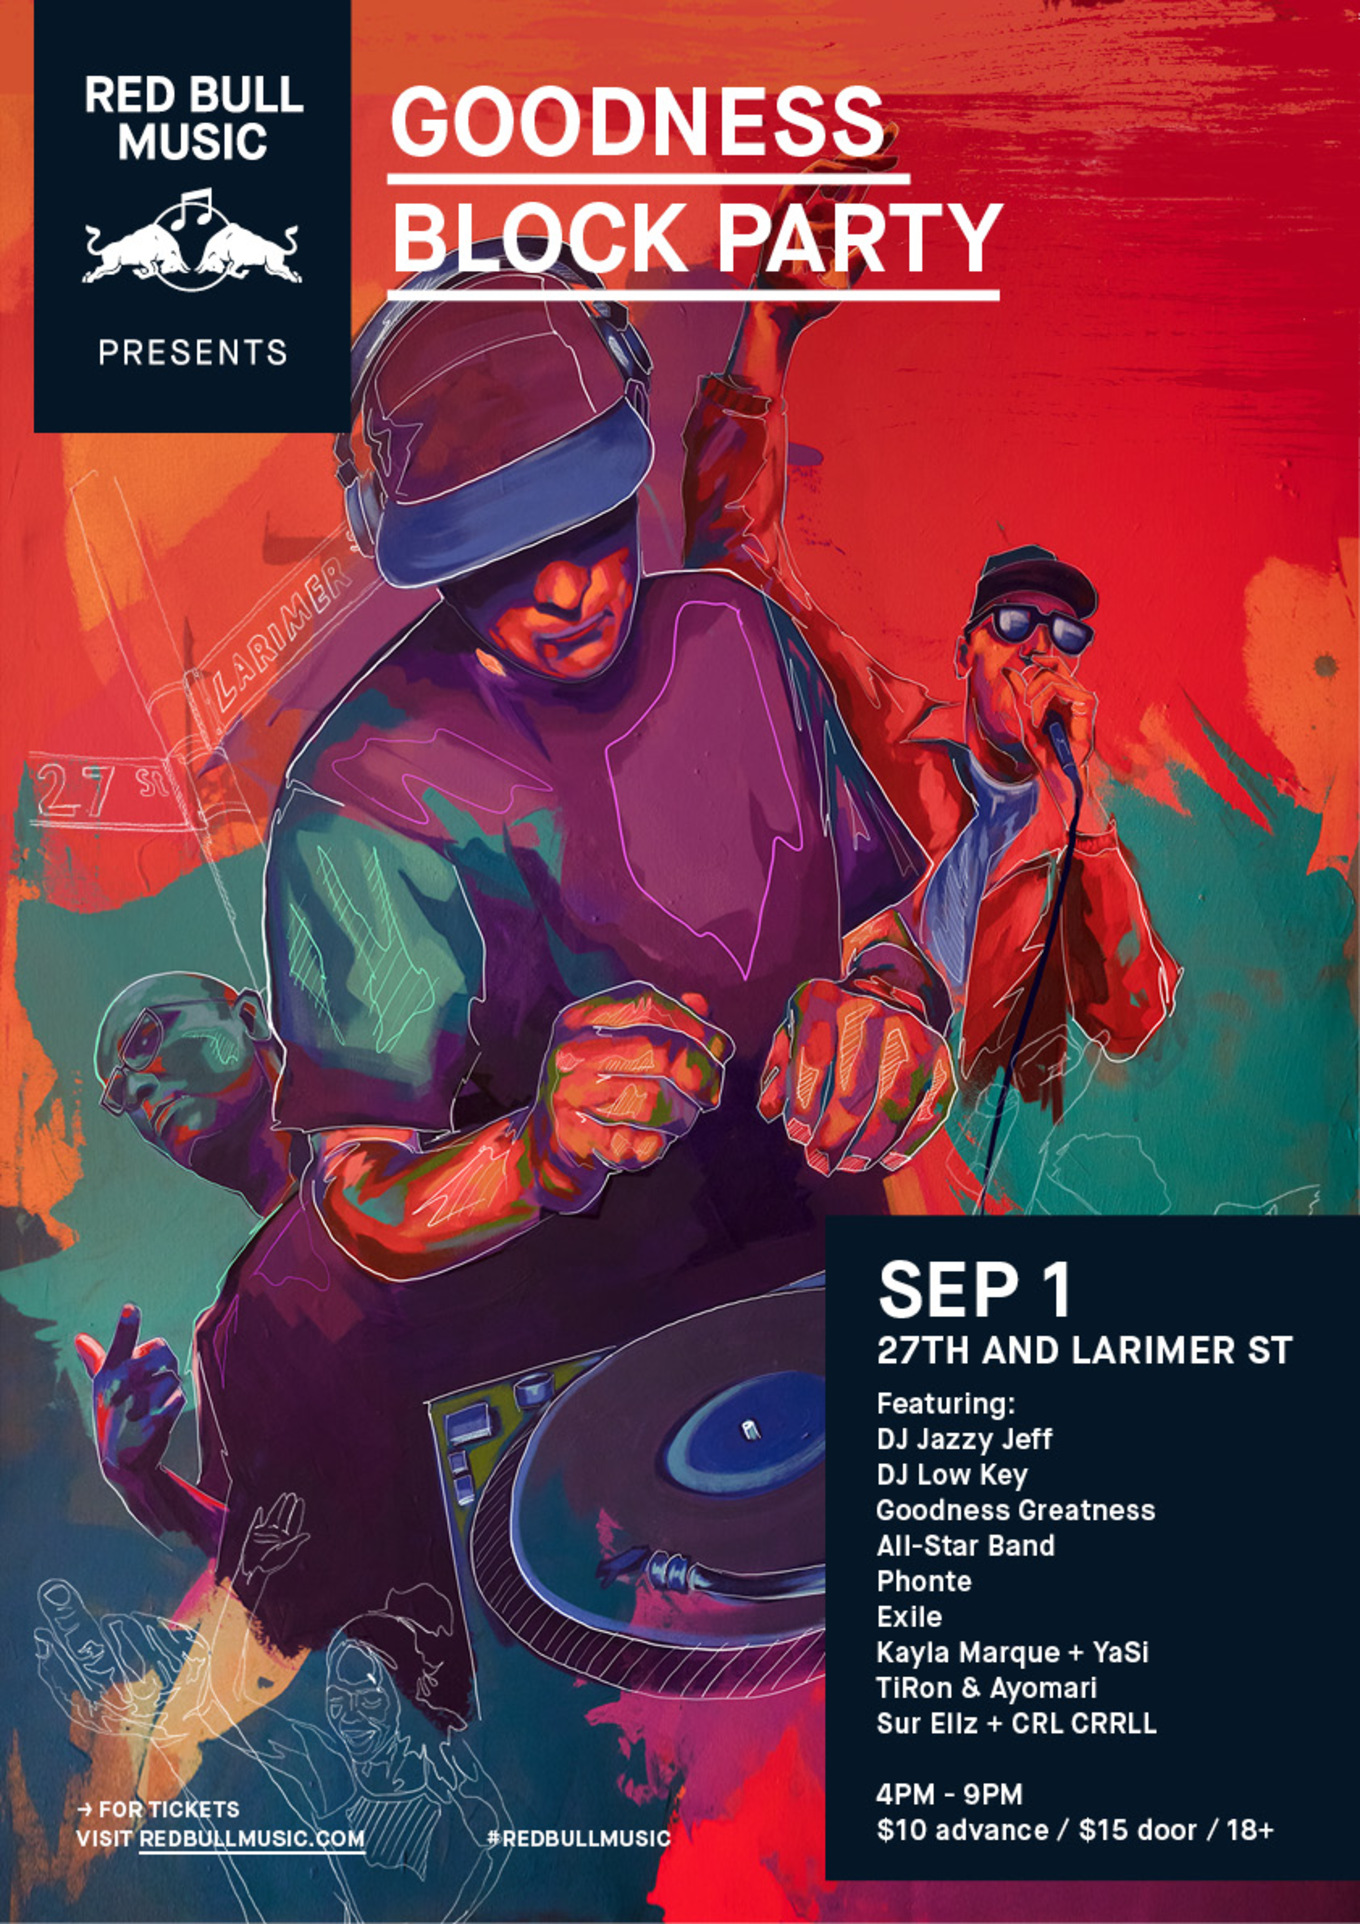 Red Bull Music Presents: Goodness Block Party